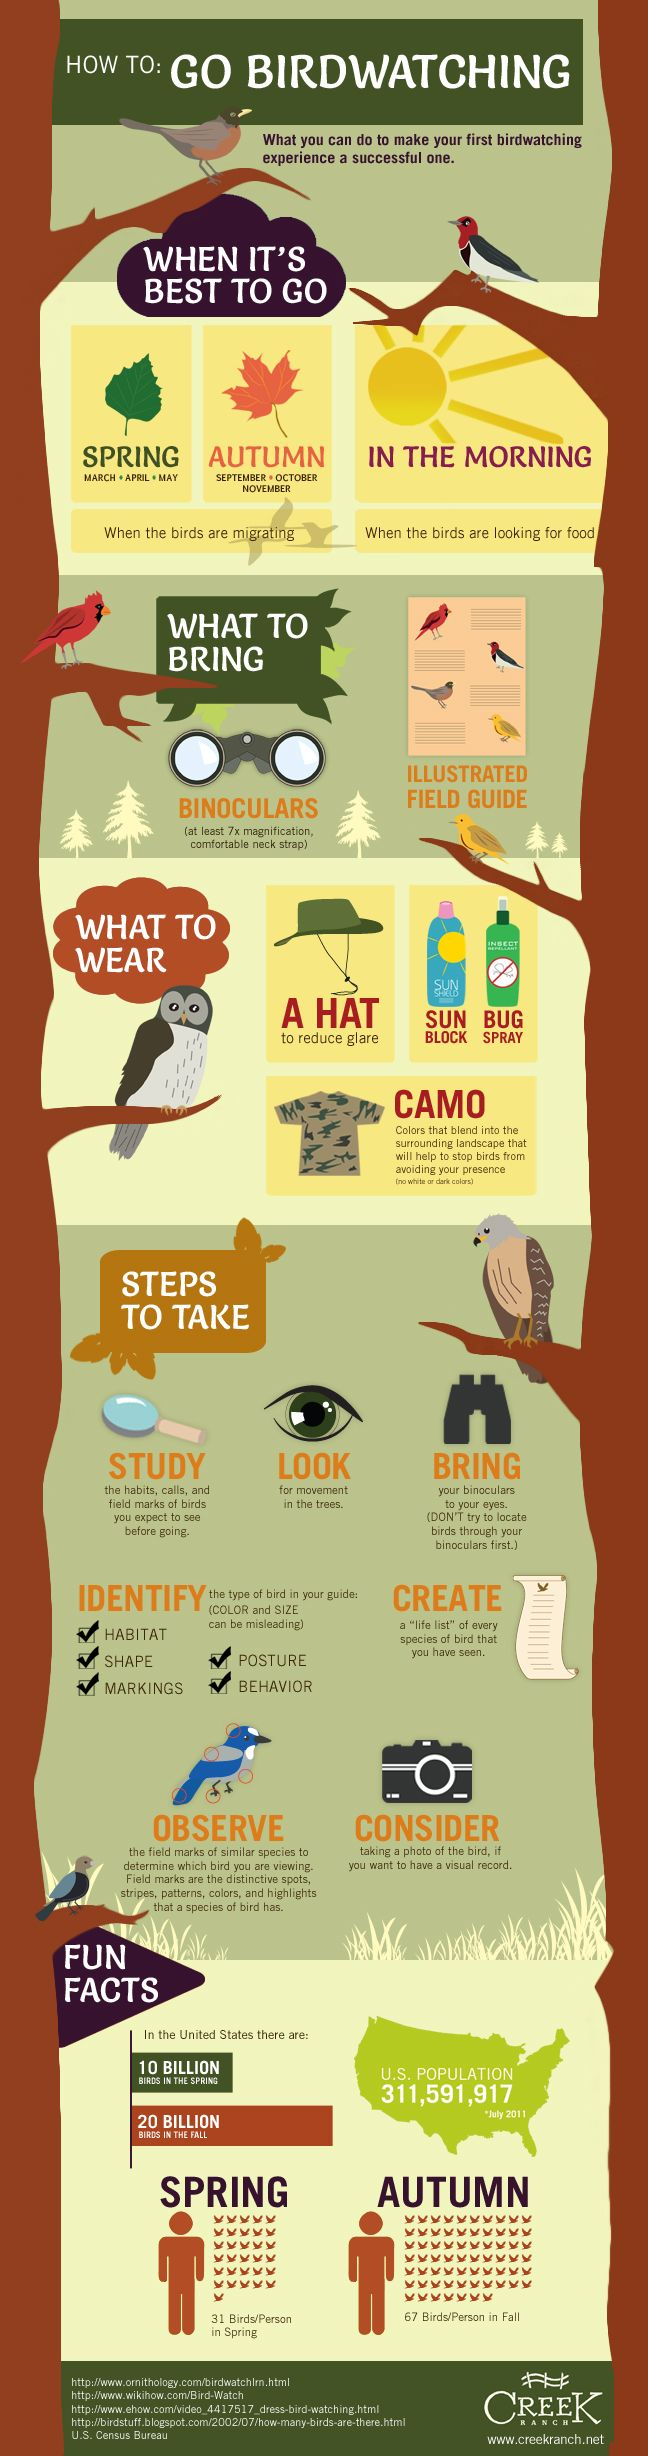 A complete graphic guide on how to go birdwatching! #birding #birders #birdwatching